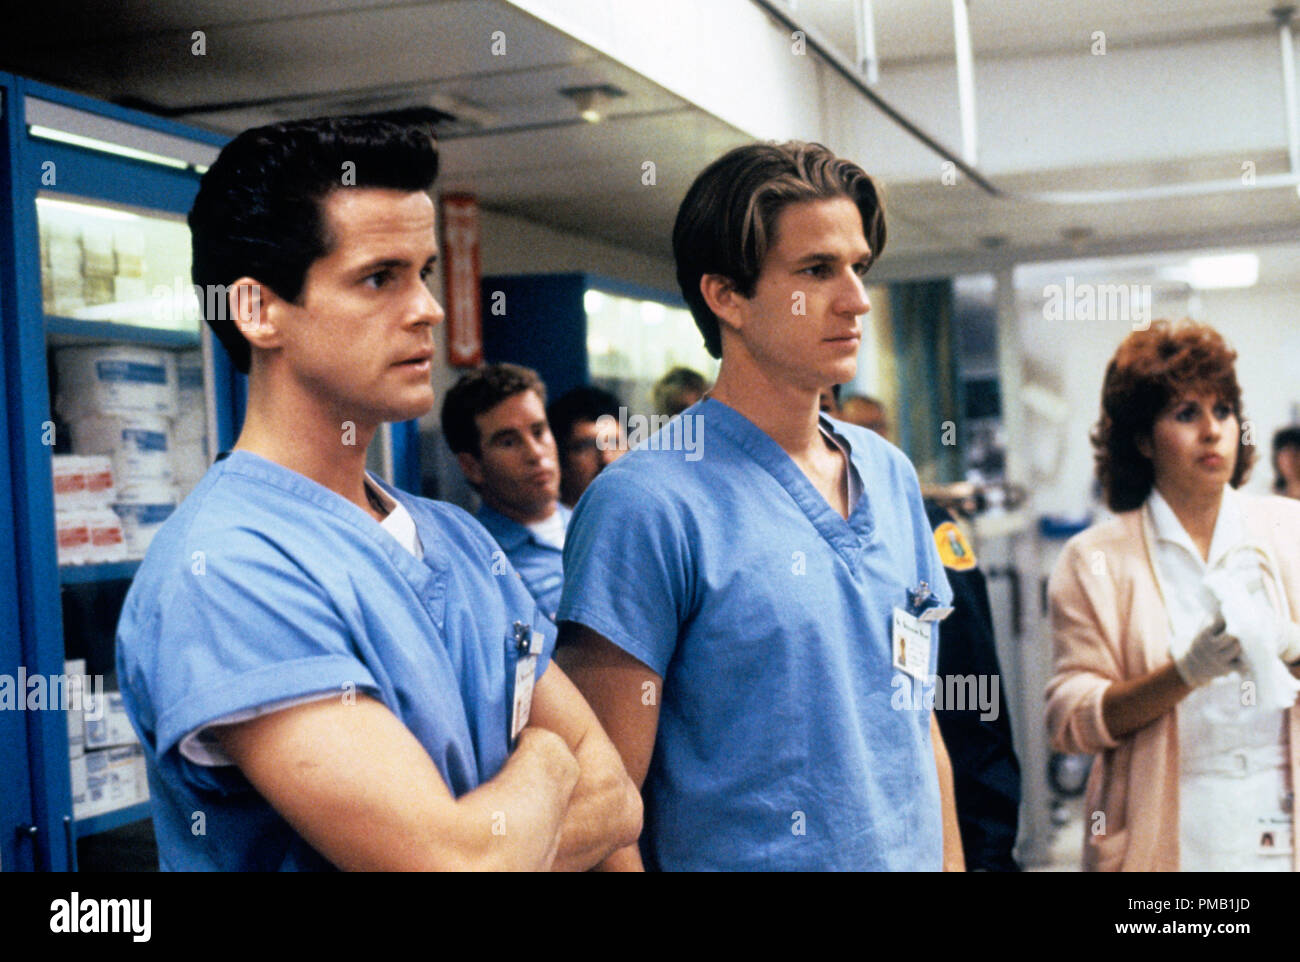 Film still or Publicity still from 'Gross Anatomy'  Matthew Modine  © 1989 Touchstone Pictures  All Rights Reserved   File Reference # 33025_010THA  For Editorial Use Only - Stock Image